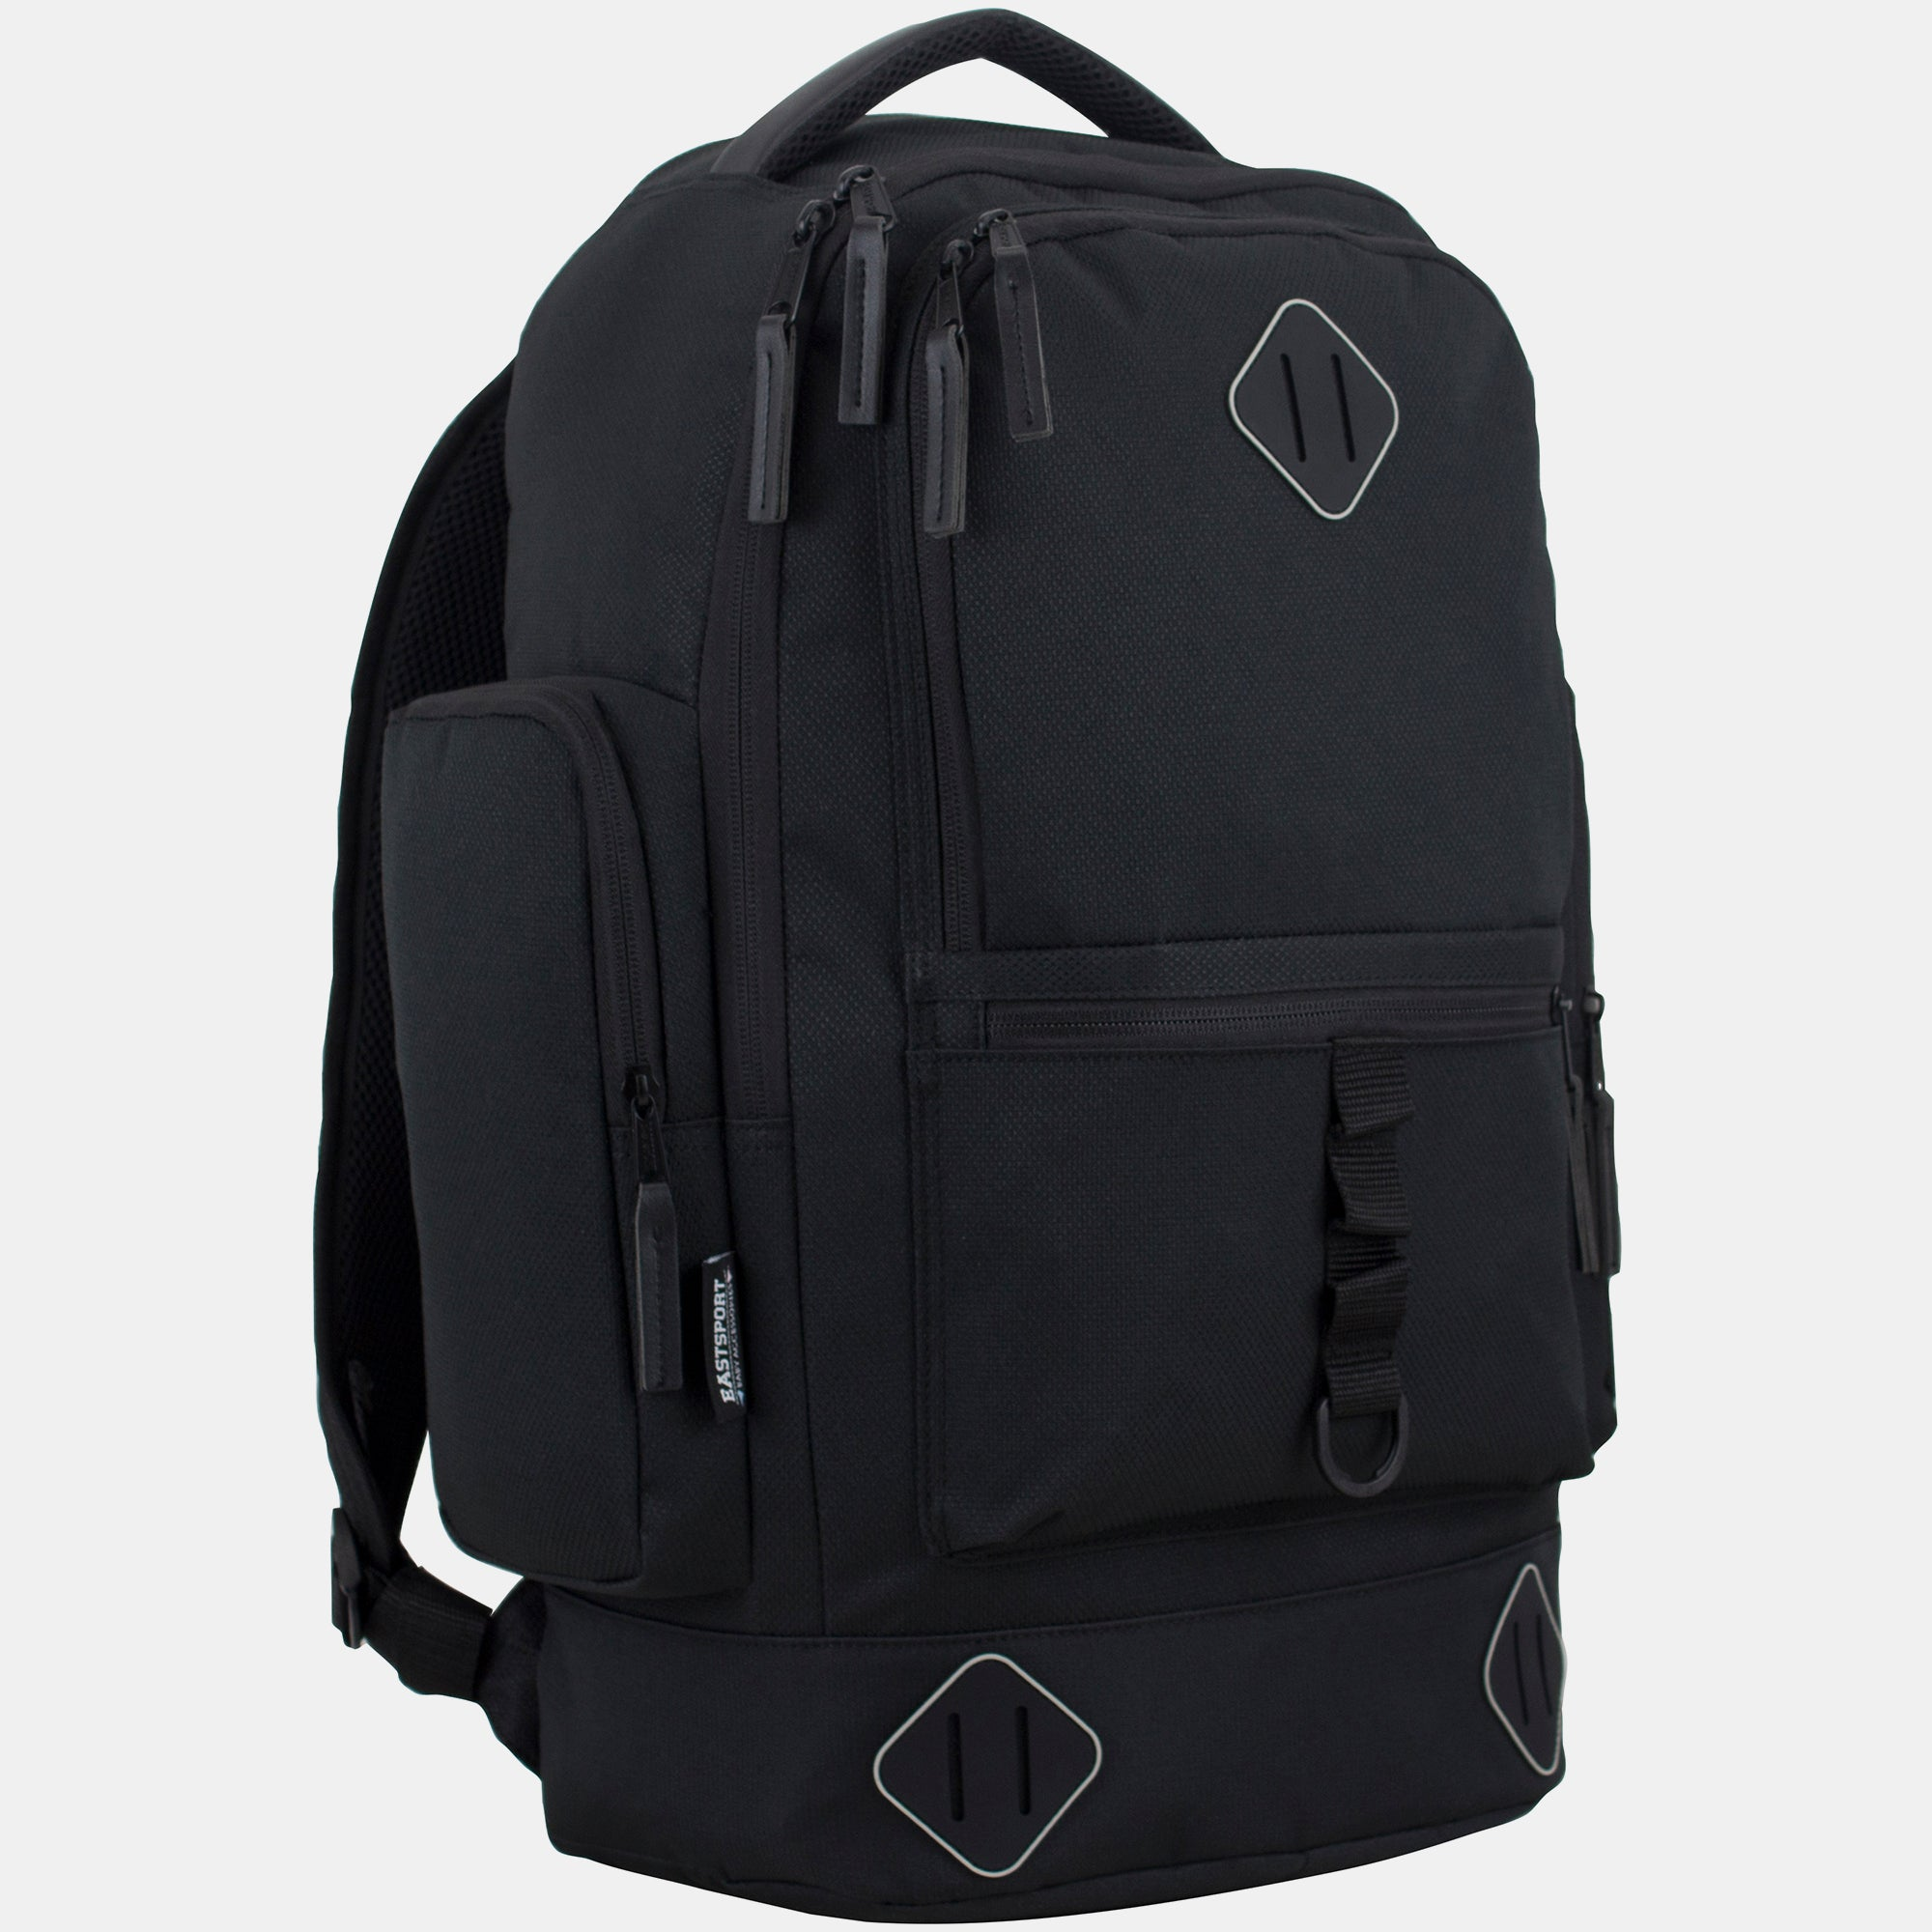 The Lenox Diaper Backpack